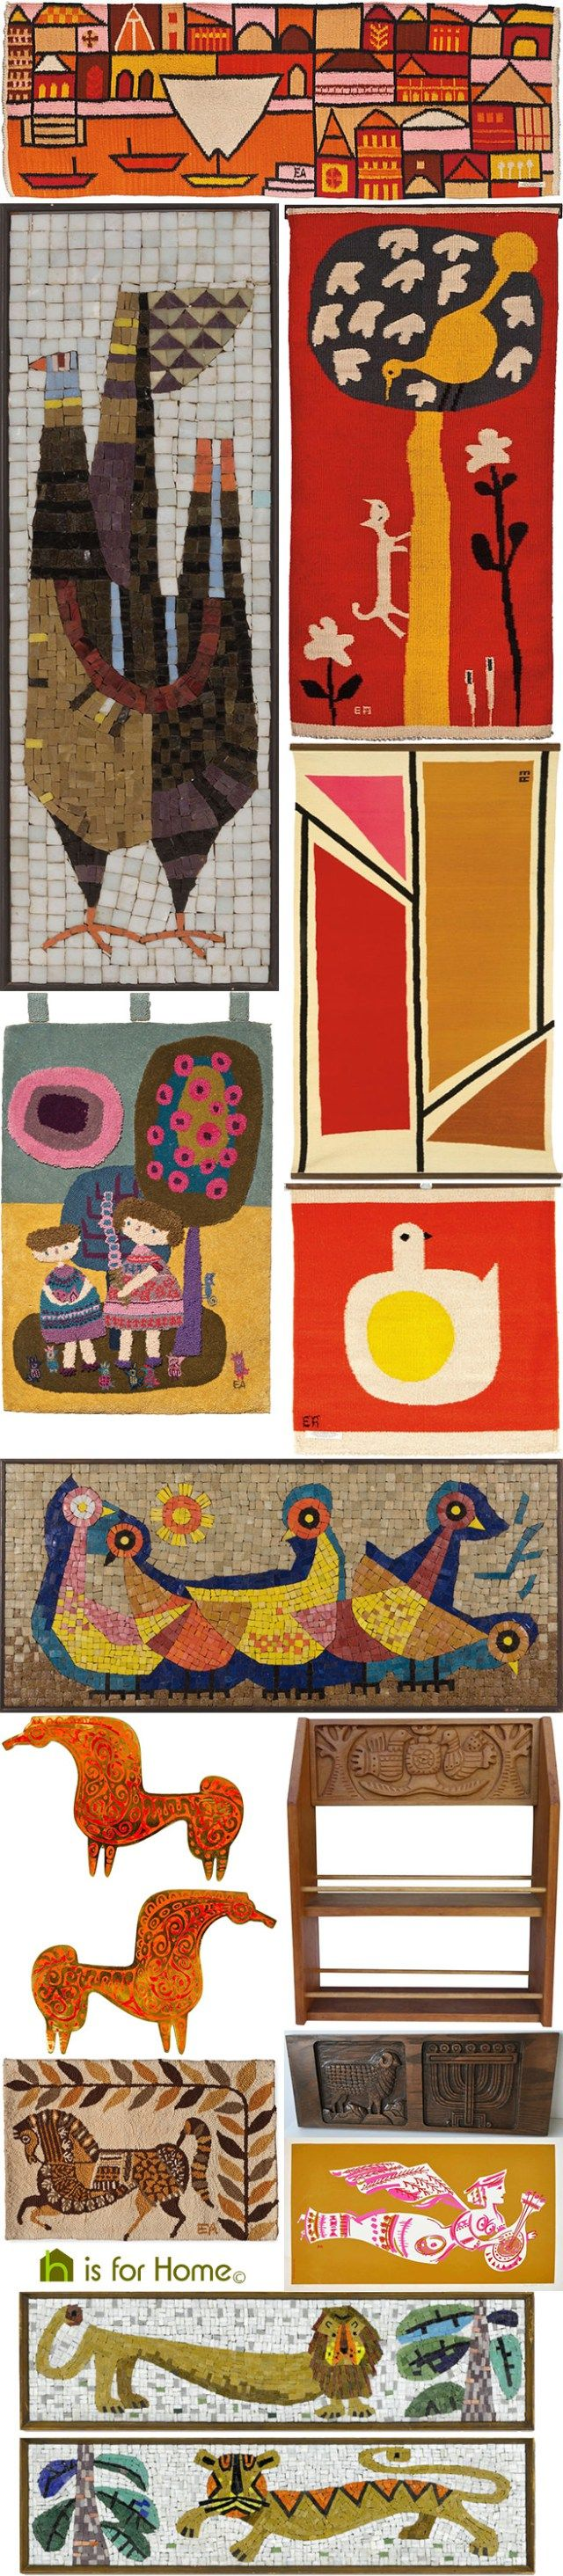 Mosaic of Evelyn Ackerman artworks | H is for Home